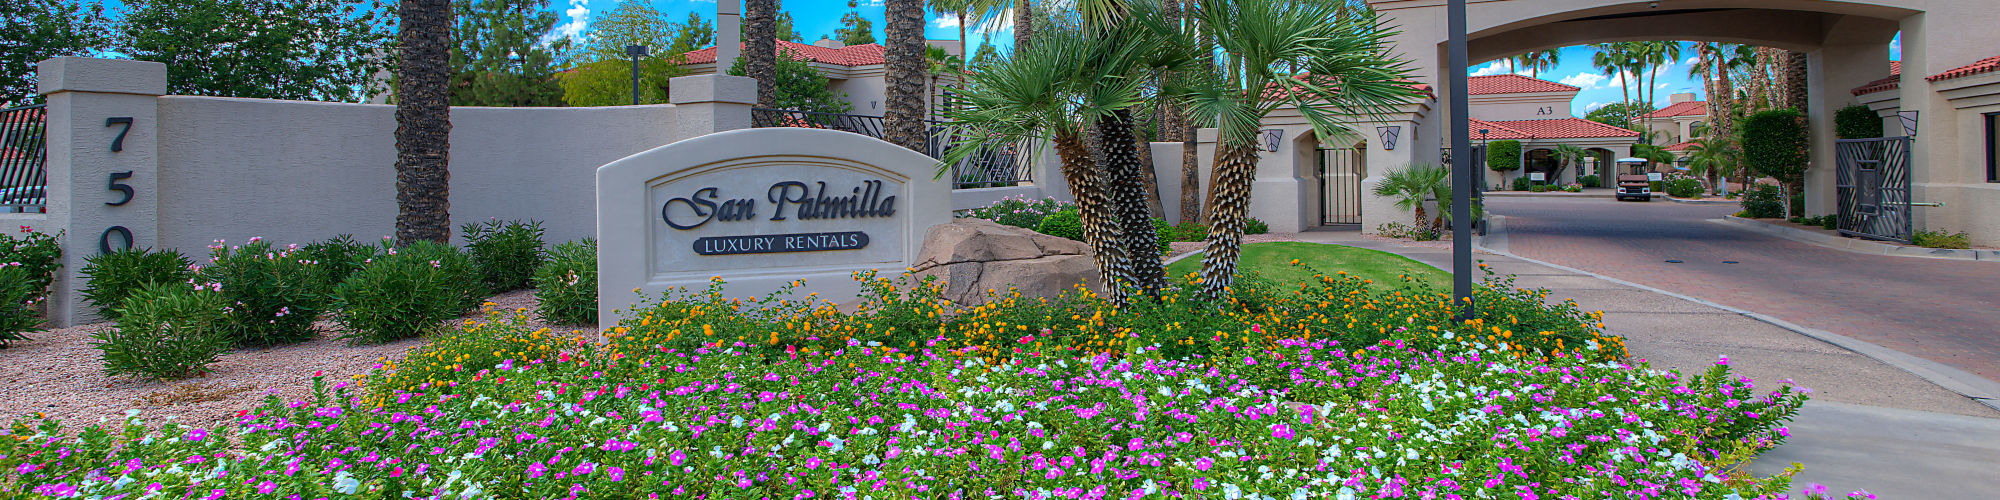 Apply to live at San Palmilla in Tempe, Arizona